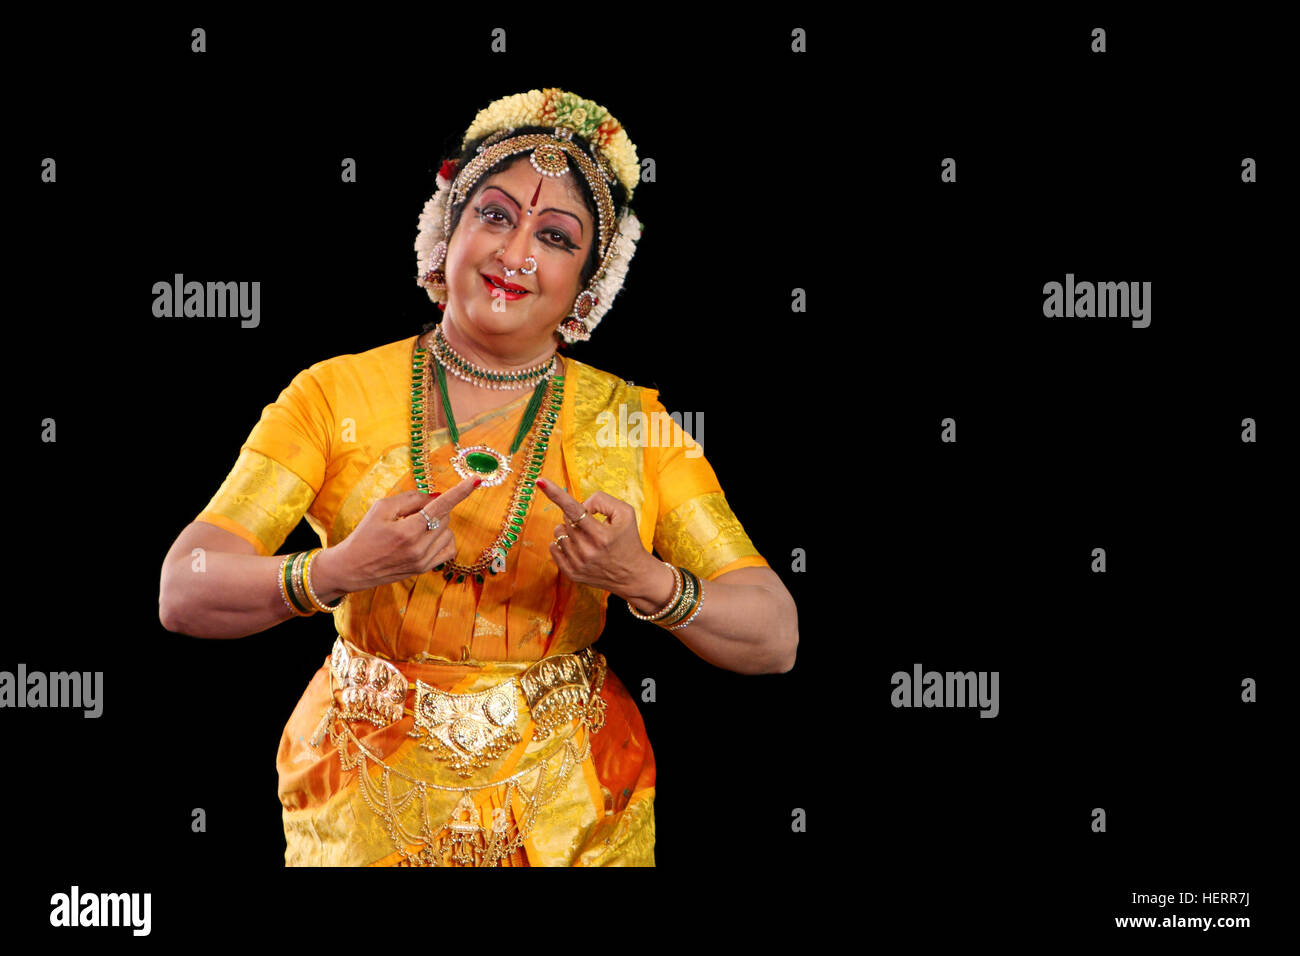 Bharatanatyam Dance Dress High Resolution Stock Photography And Images Alamy